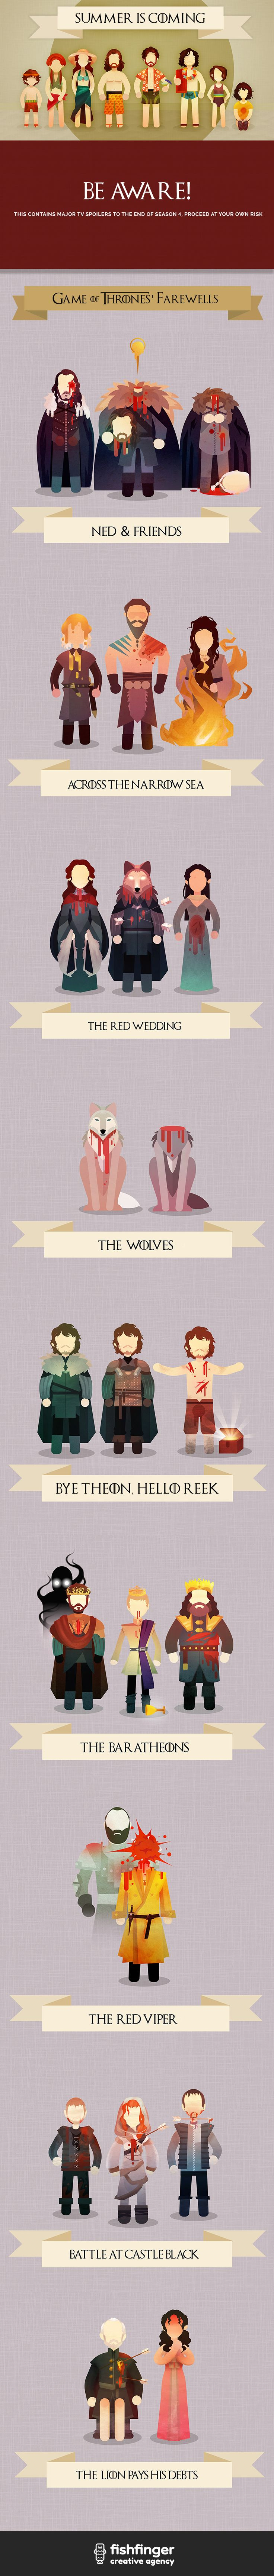 Game of Thrones Farewell Illustrations | Visual.ly